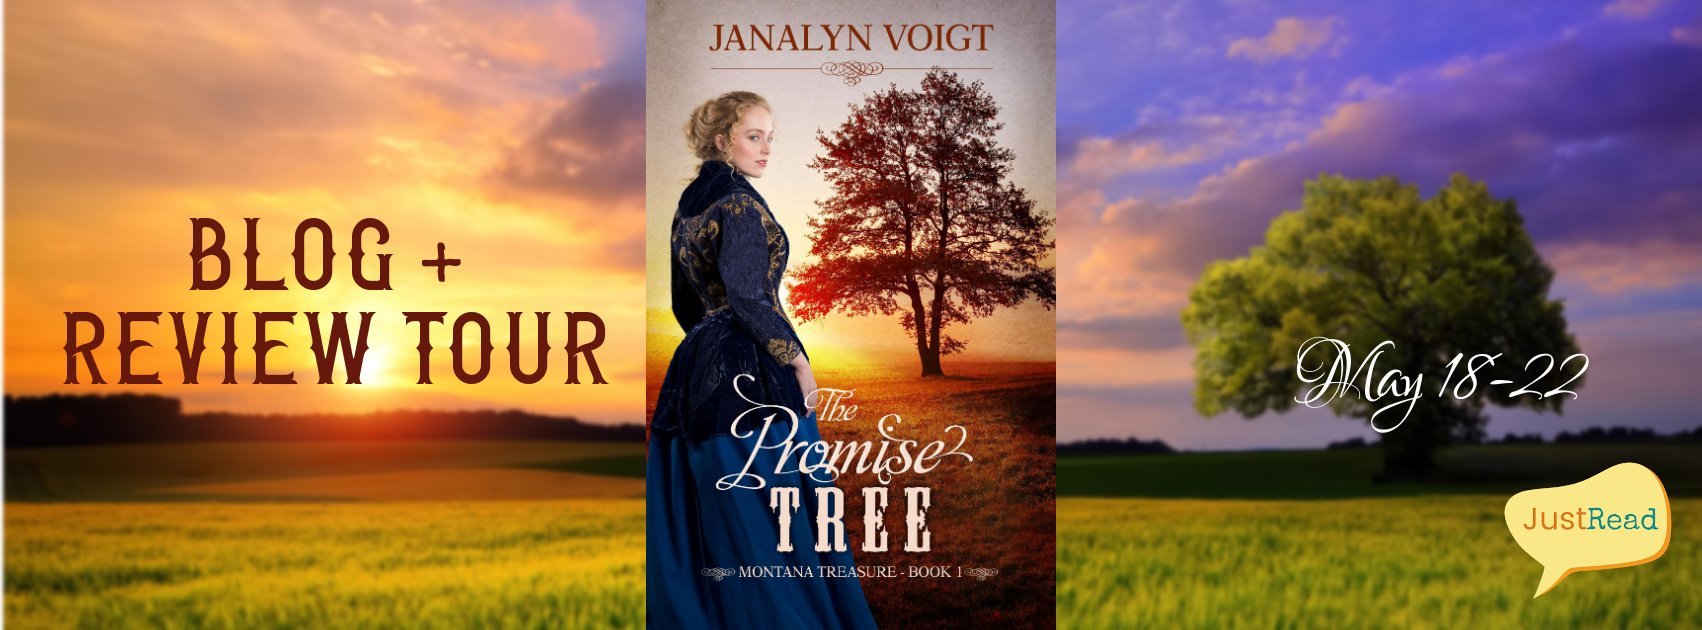 The Promise Tree JustRead Blog + Review Tour